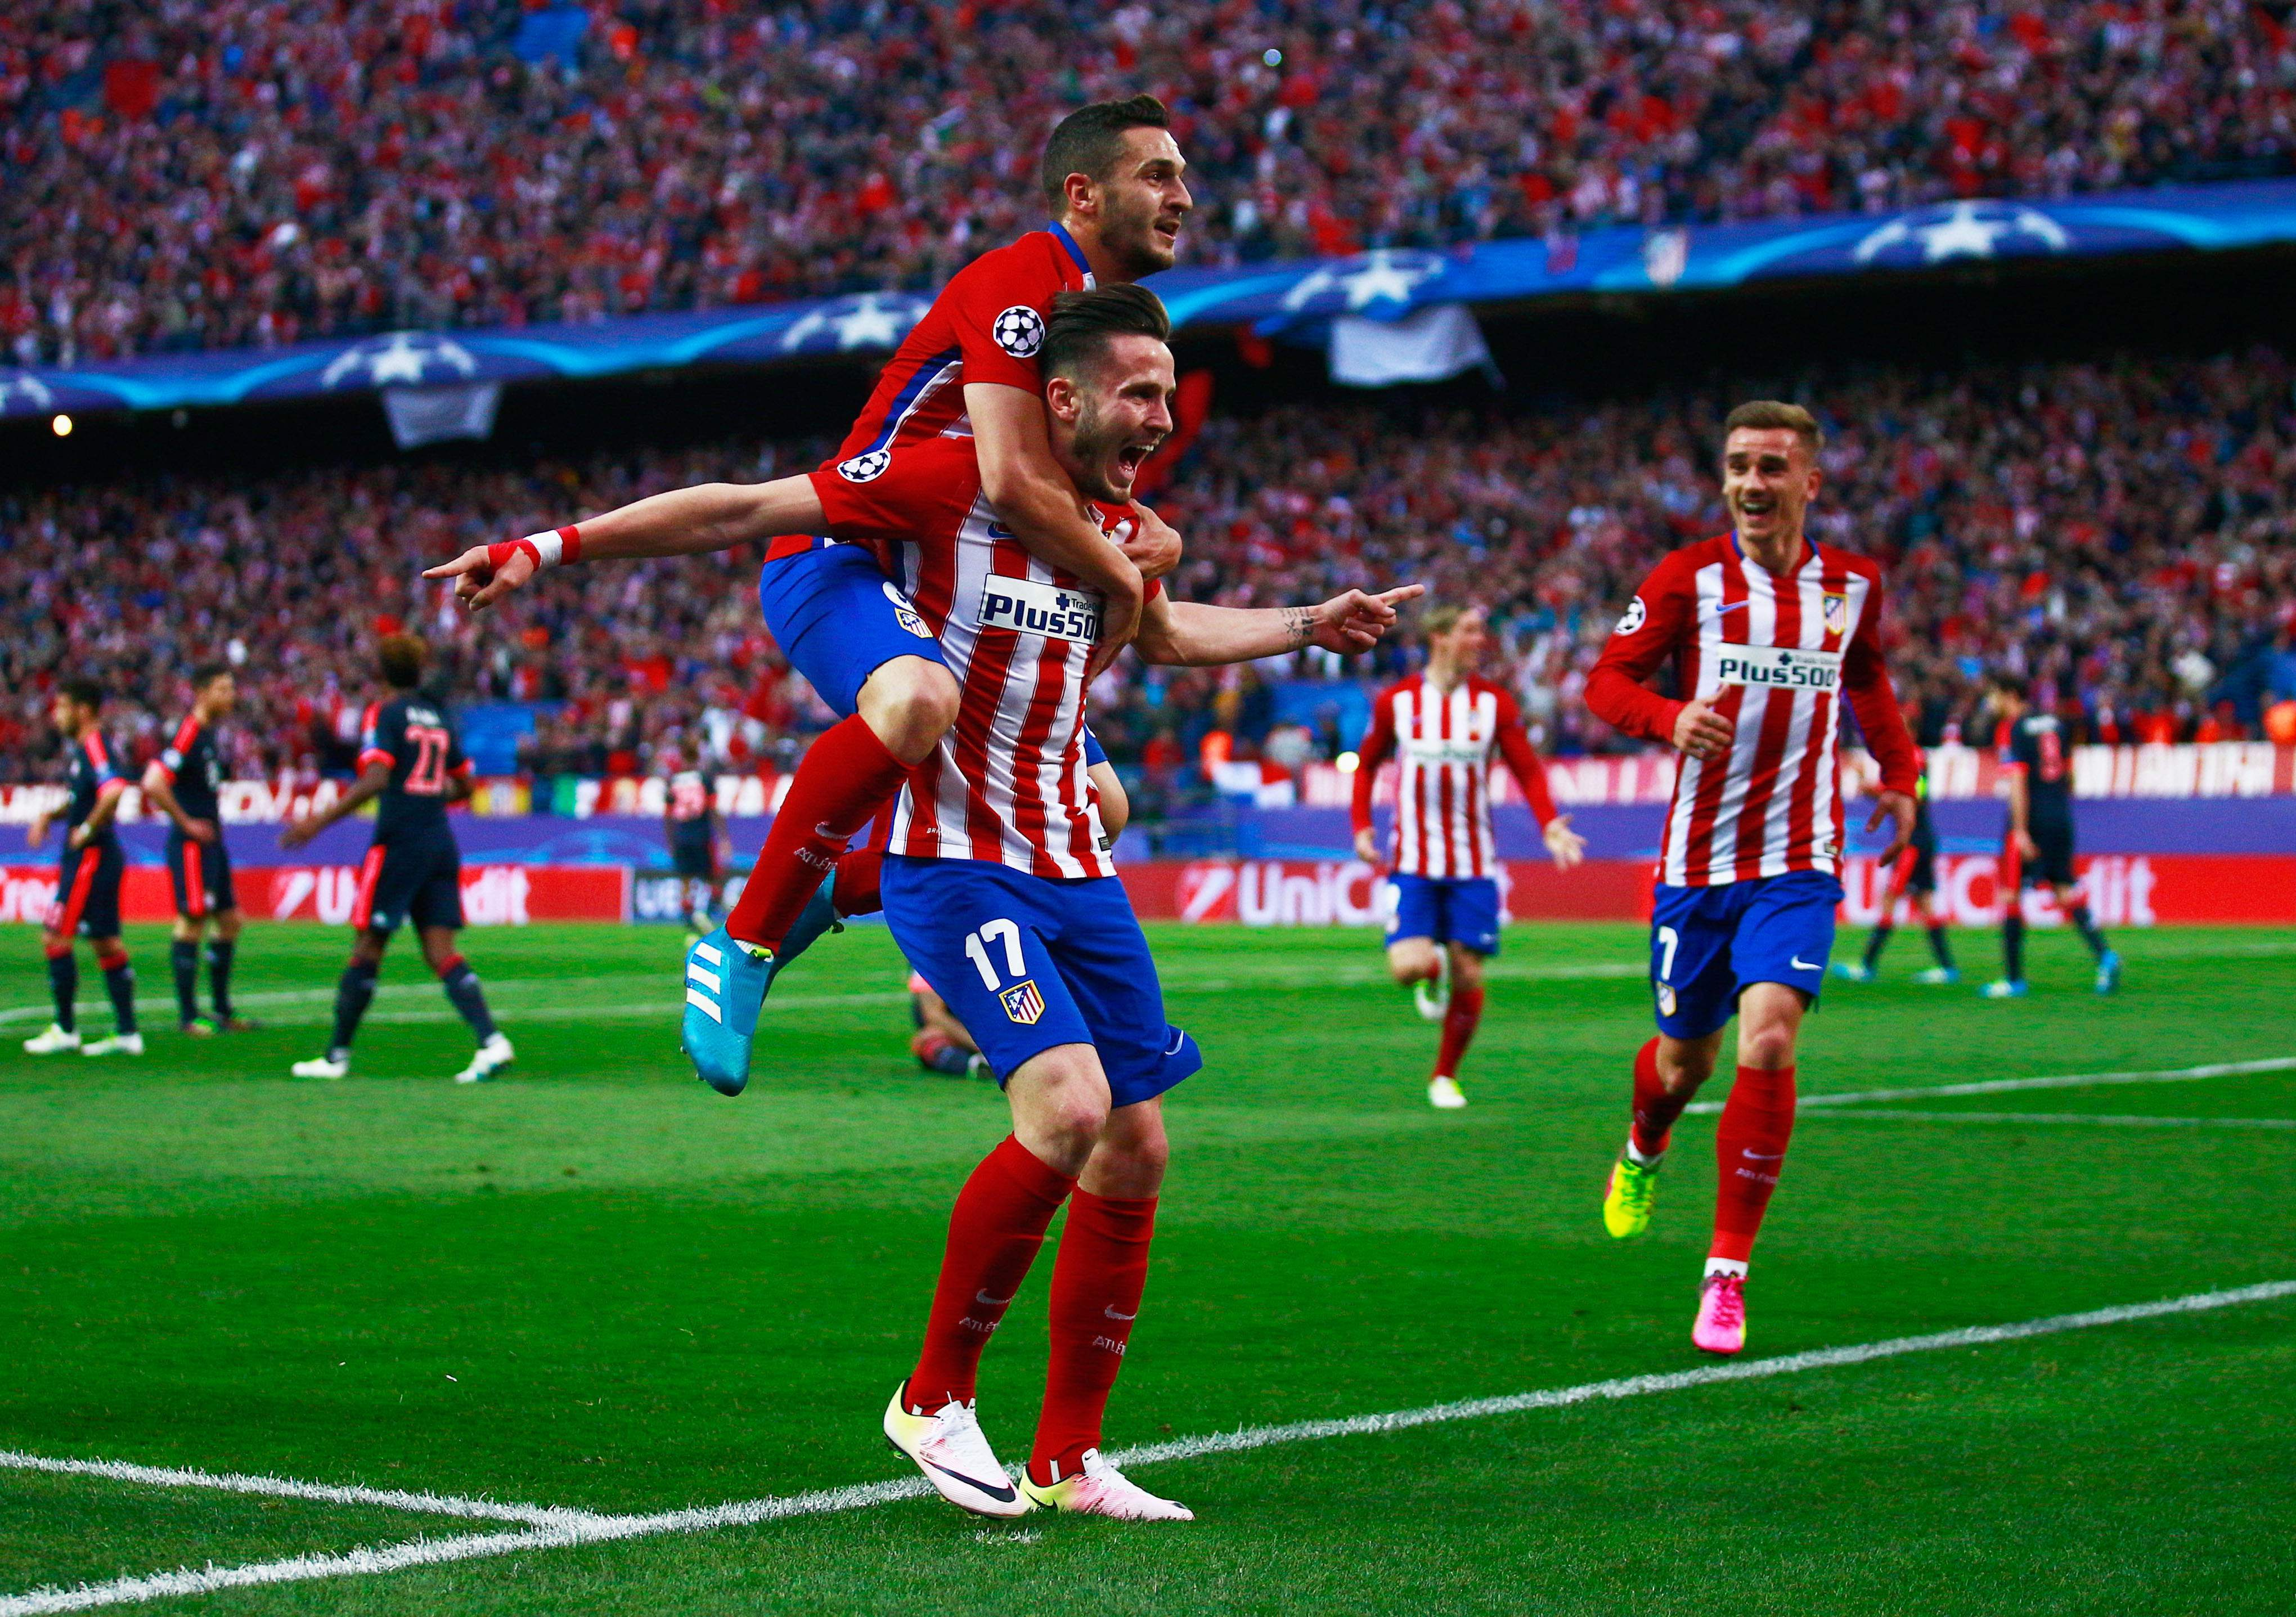 Atletico madrid wallpapers images photos pictures backgrounds atletico madrid 4k voltagebd Choice Image